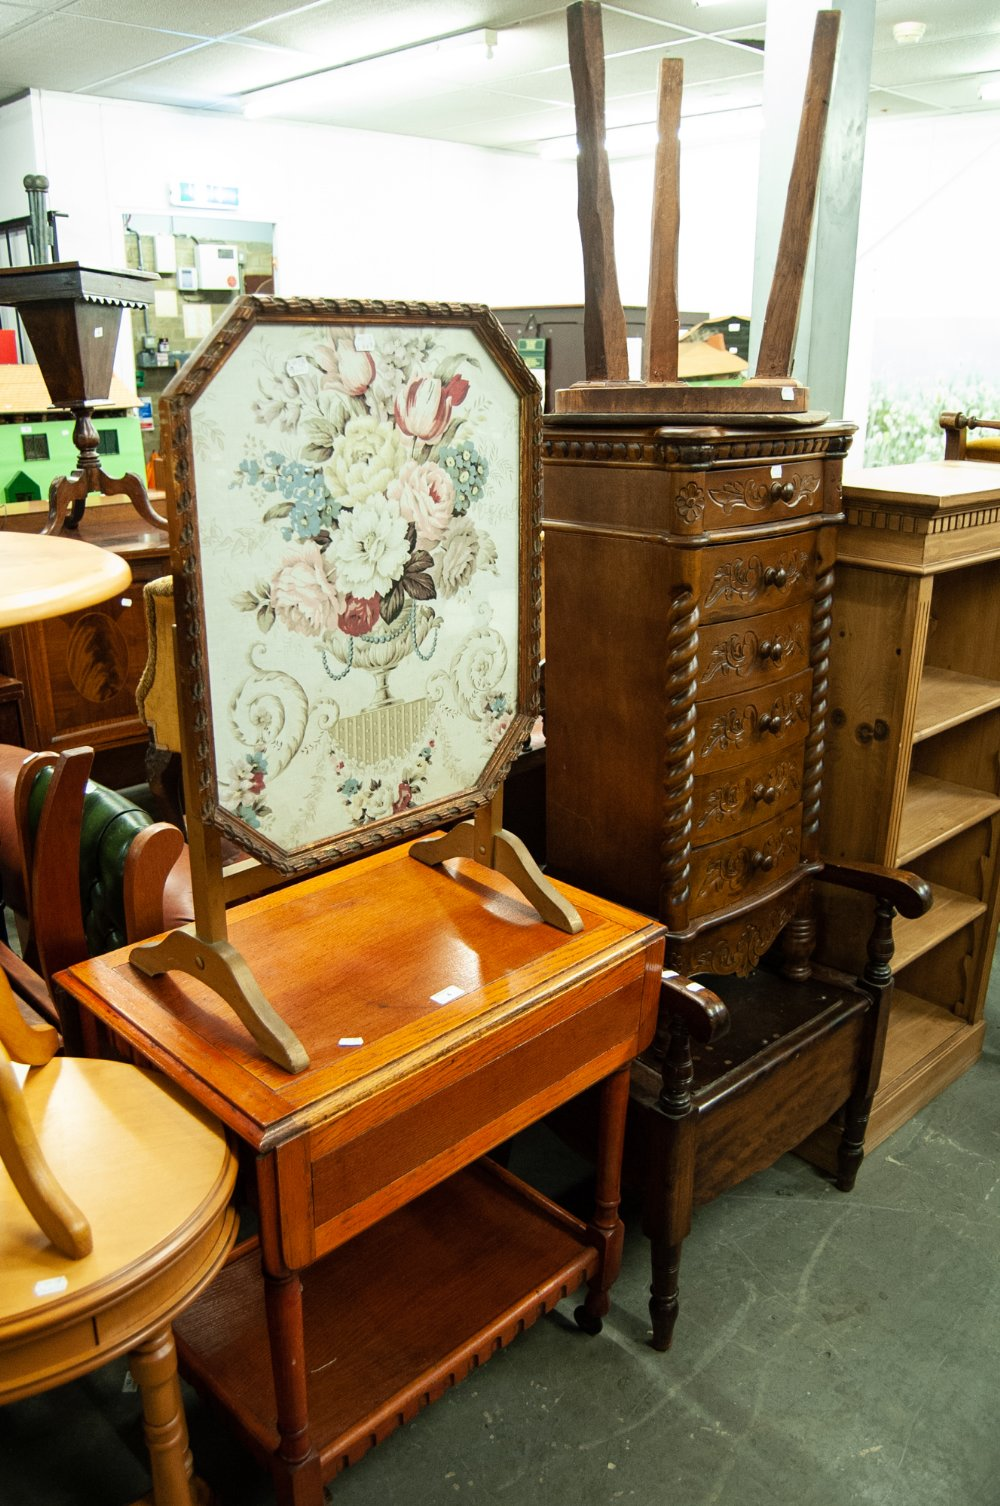 Lot 4 - A GILT FRAMED FIRE-SCREEN AND A CIRCULAR TOP TABLE, ON TRIPLE SUPPORTS AND A TWO TIER TEA TROLLEY (